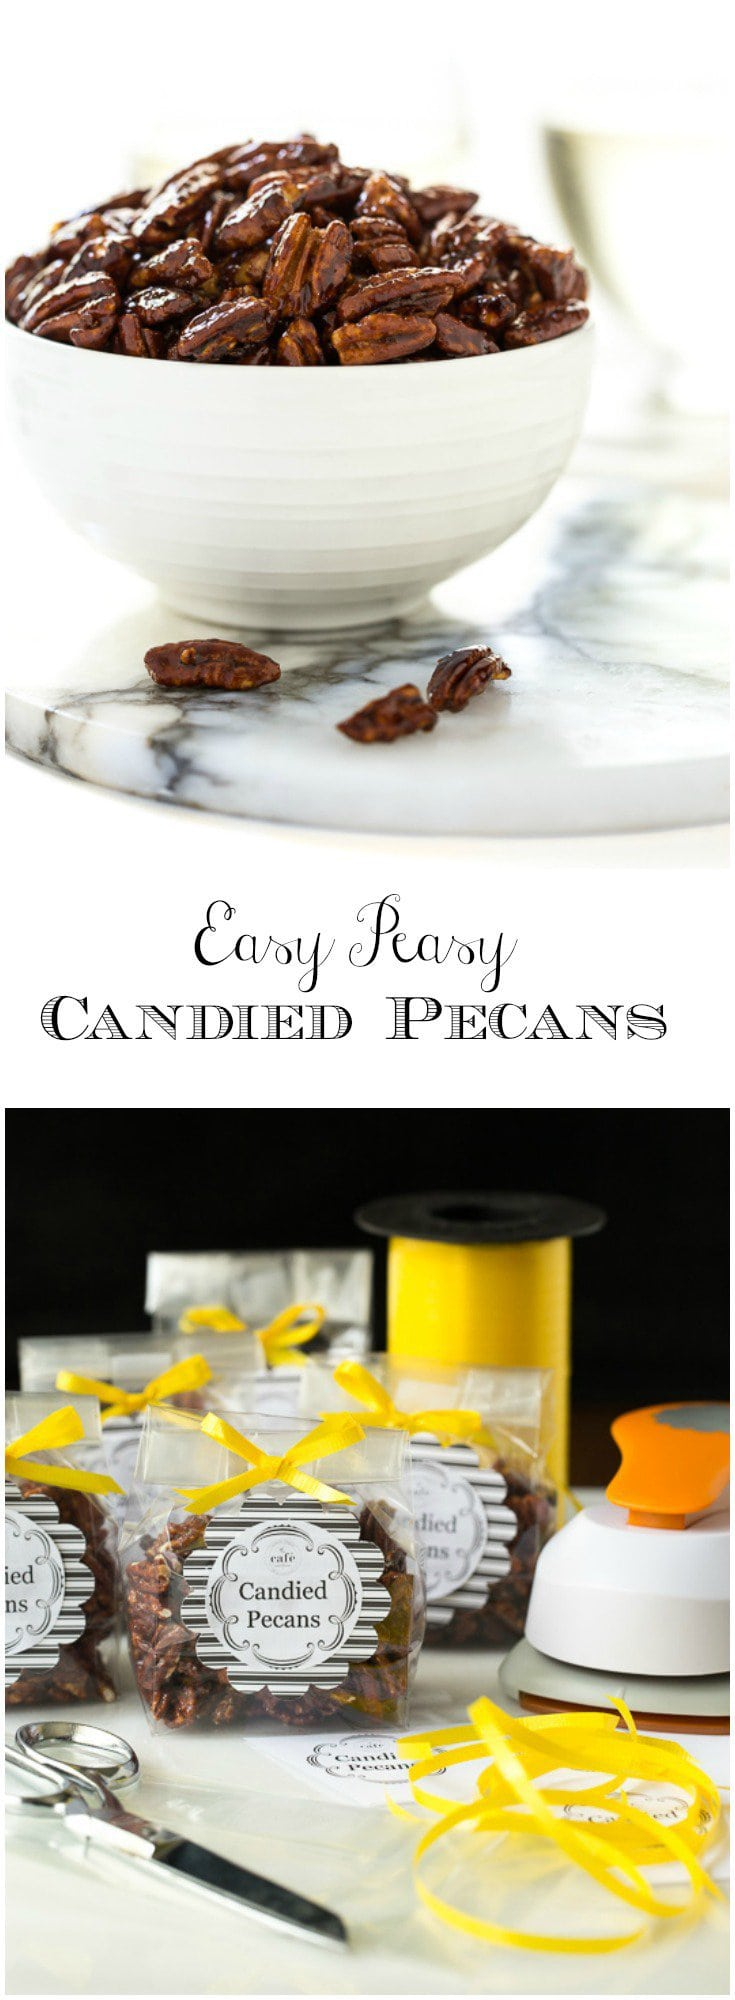 You\'ll find a zillion ways to use these Easy Peasy Candied Pecans... a delicious cocktail nibble, fabulous salad topping, awesome hostess gift... #eastcandiedpecans, #candiedpecans, #pecansforsalad